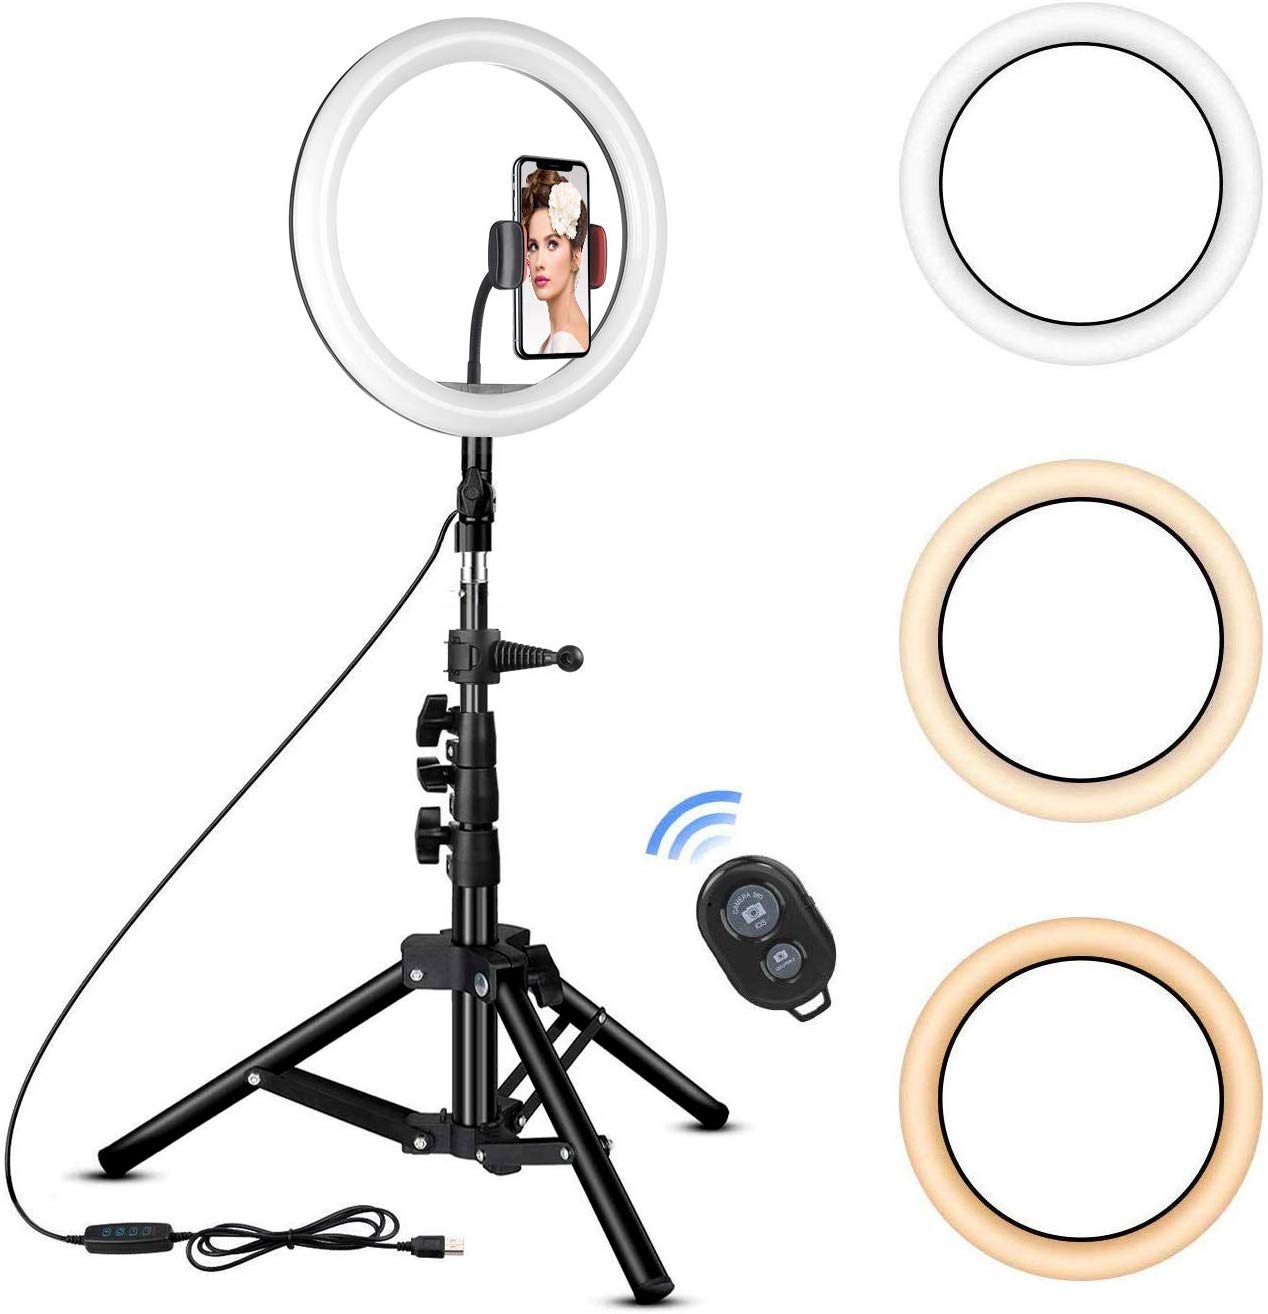 "Rovtop 10"" Ring Light"